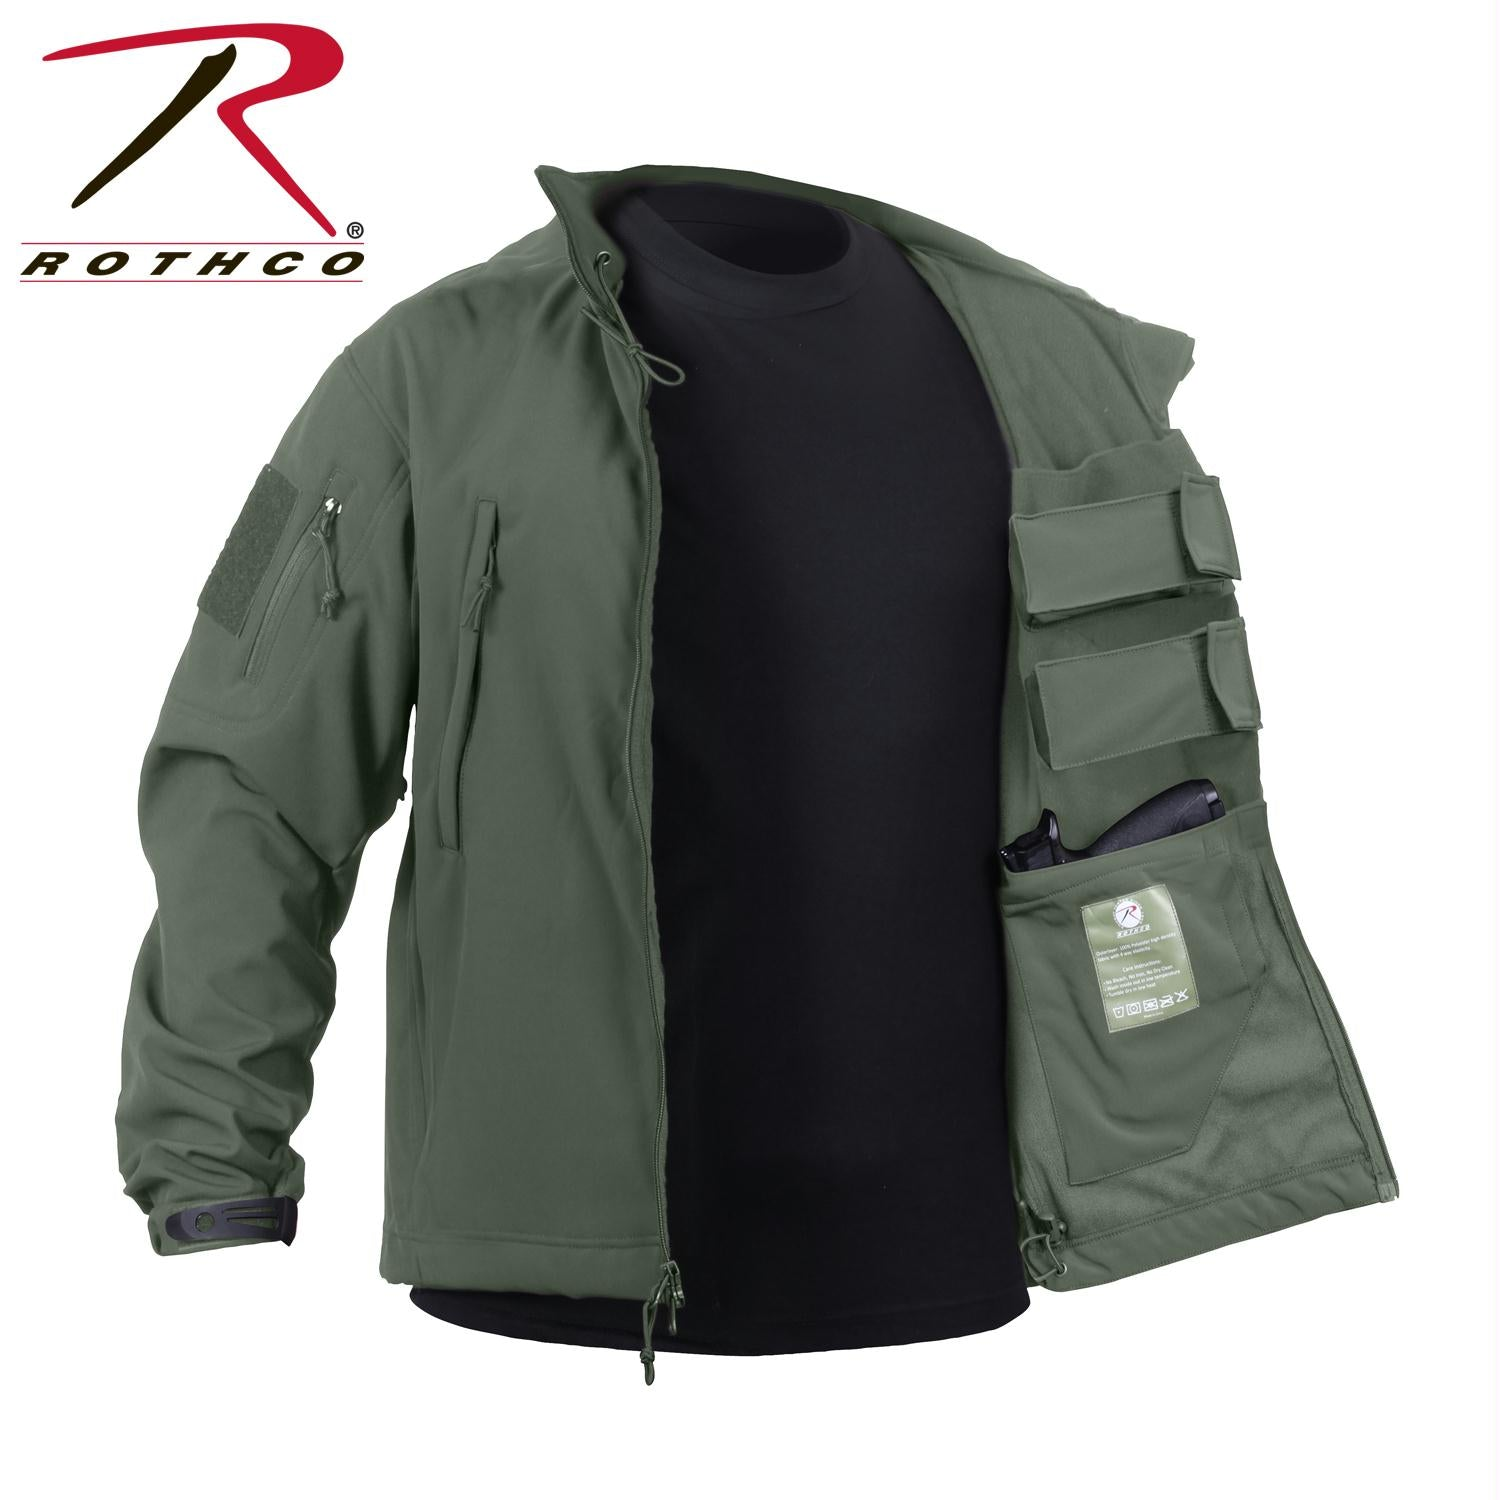 Rothco Concealed Carry Soft Shell Jacket - Olive Drab / L